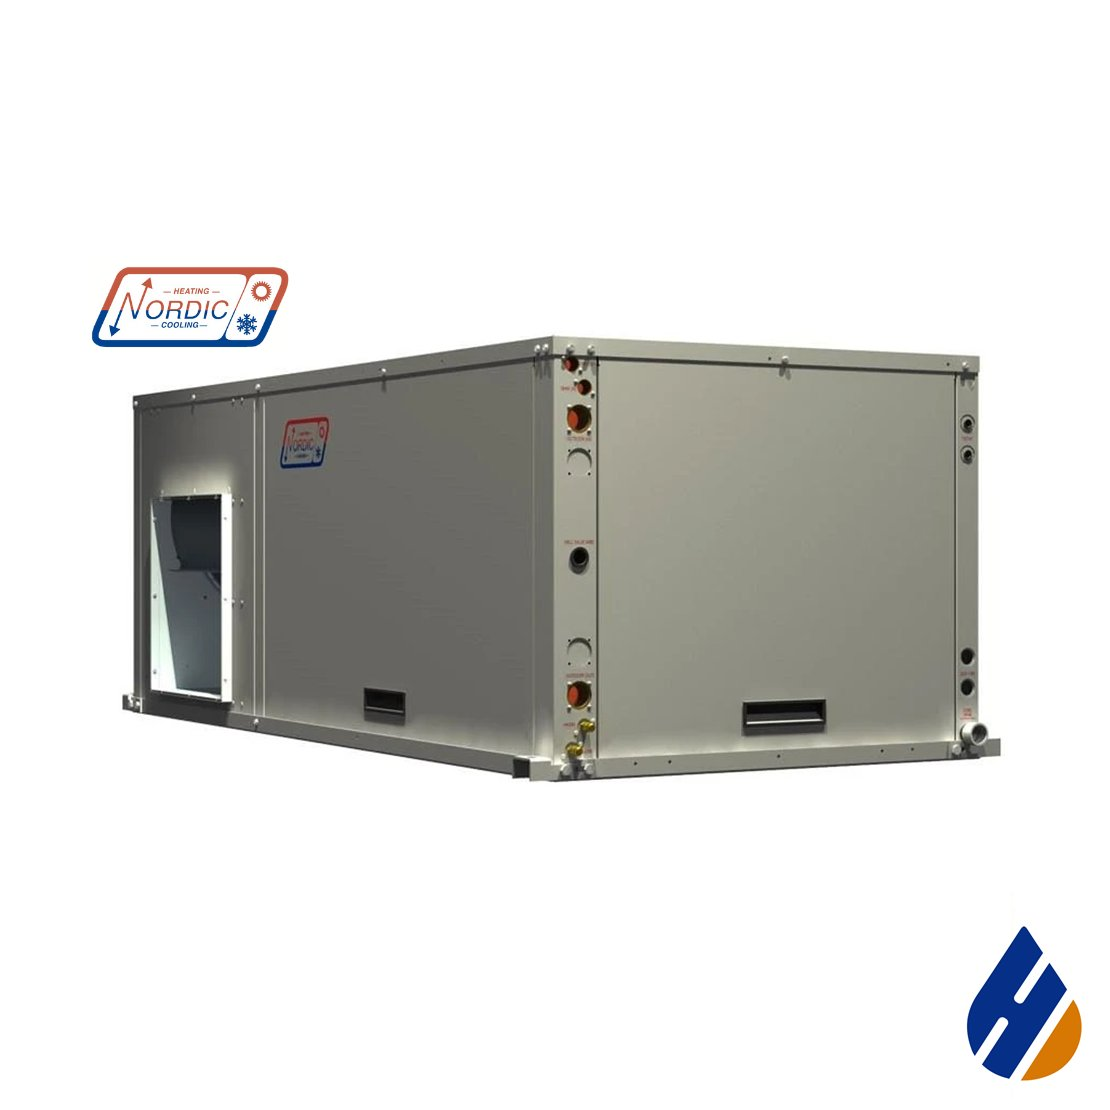 Nordic RH Series Water to Air Heat Pumps